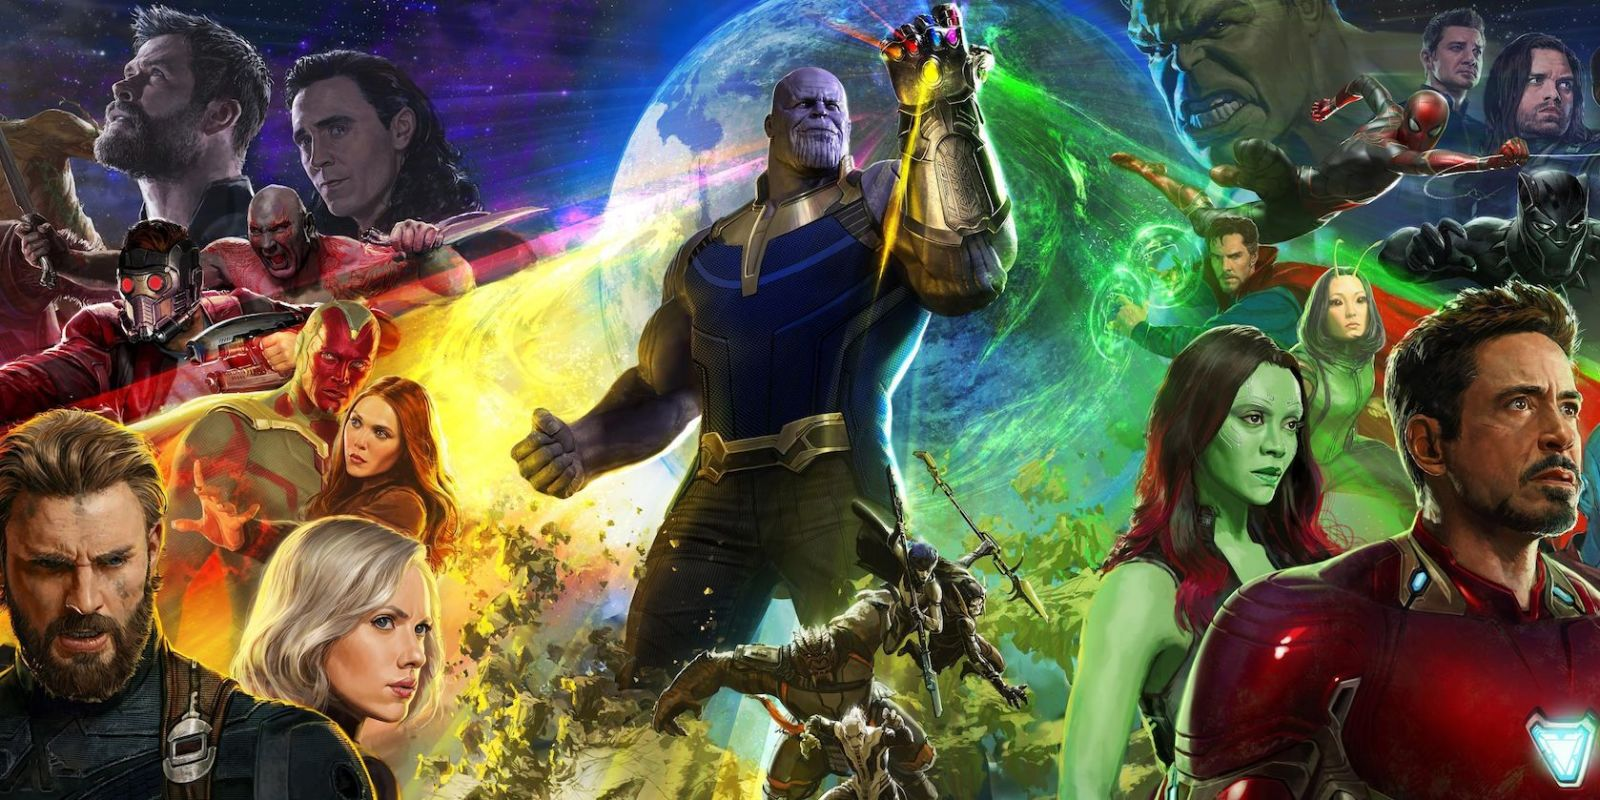 avengers: infinity war cast, release date, plot, spoilers and